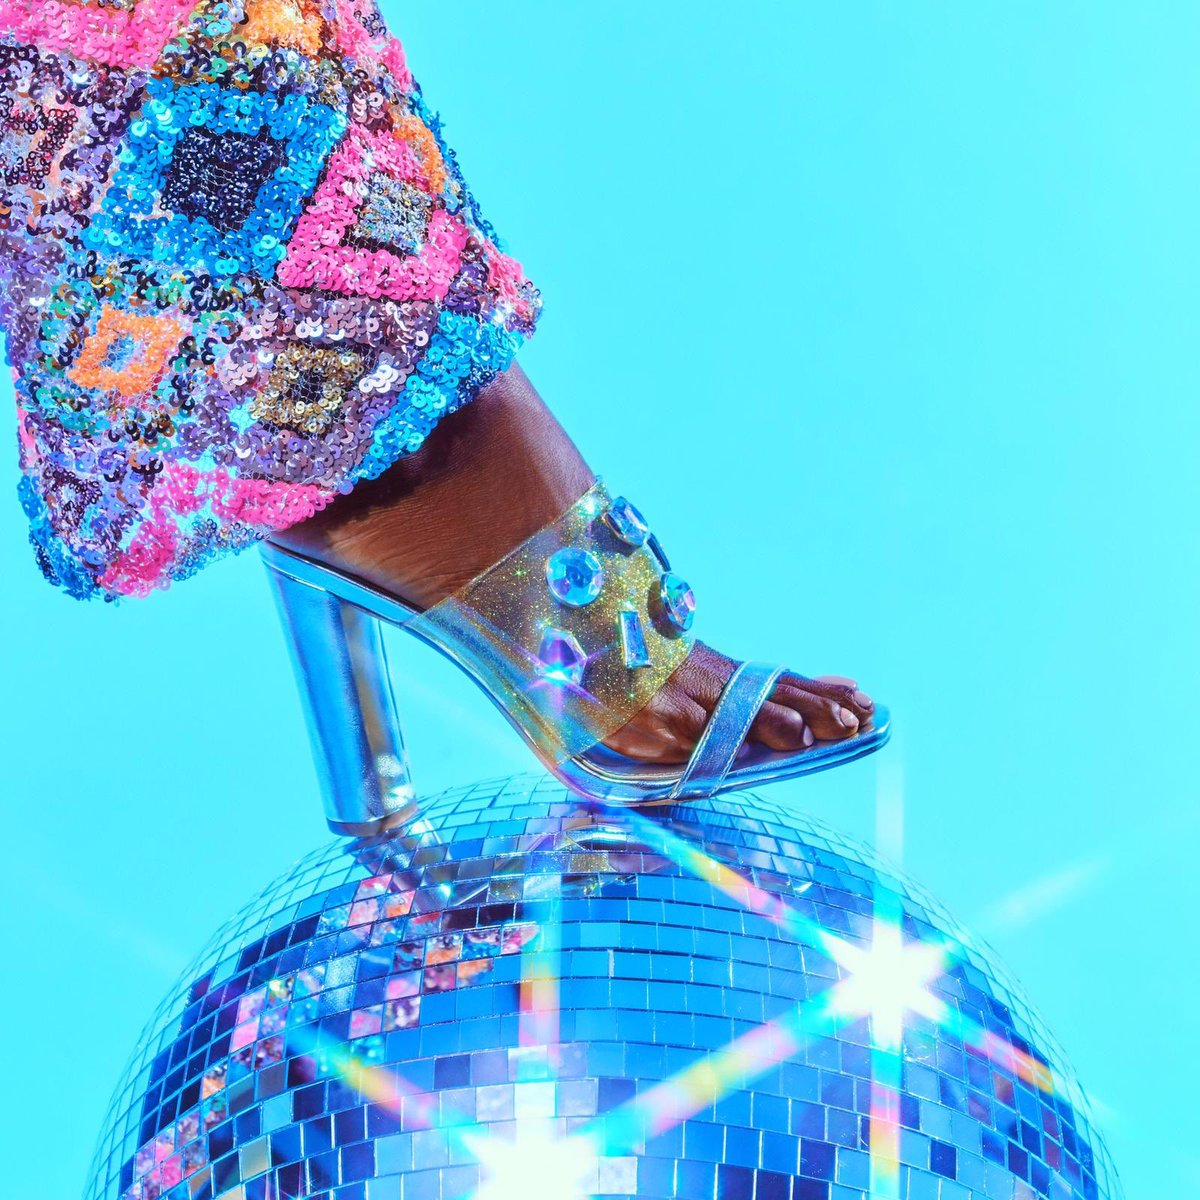 Ignite the (disco) light & let it shine for your 4th of July lewk 🎆🎇 dont forget that 10% from the sale of every shoe and handbag from the @kpcollections website will go to @PointFoundation to support their efforts in empowering more BIPOC LGBTQ+ students #shoesdaytuesday https://t.co/N1qwOeRJT3